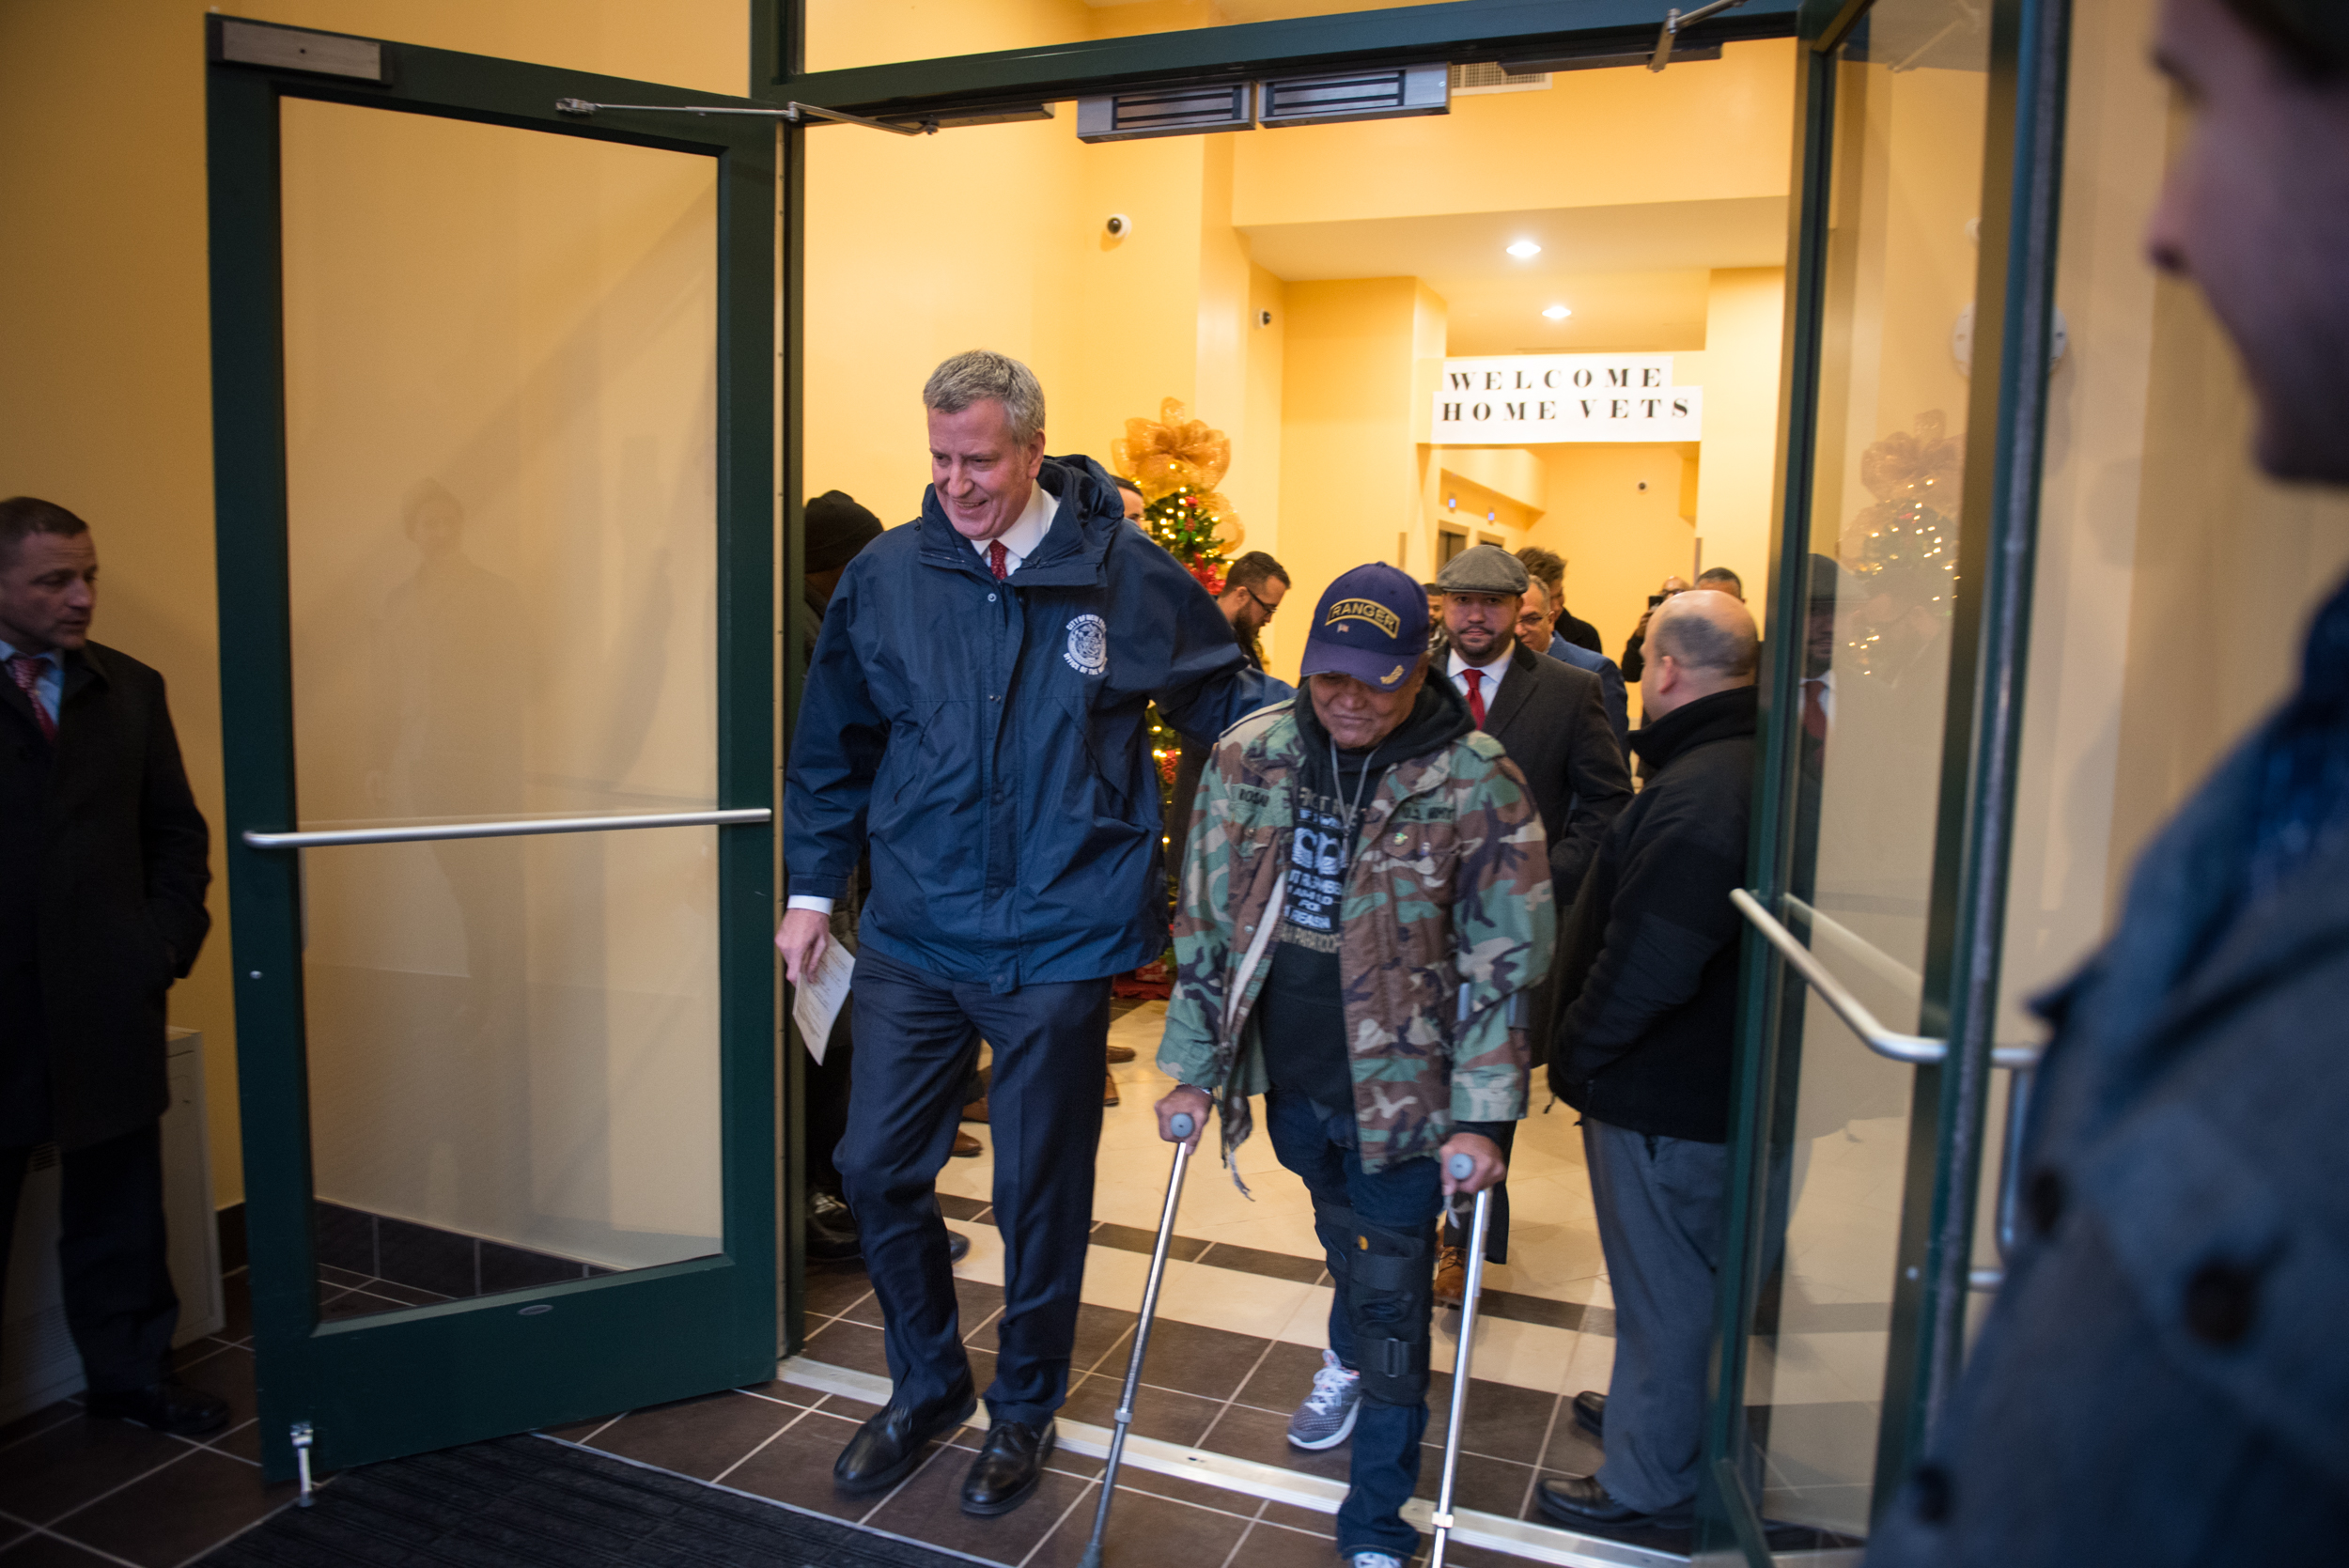 Mayor de Blasio Announces New Affordable Homes for 16 Previously Homeless Veterans